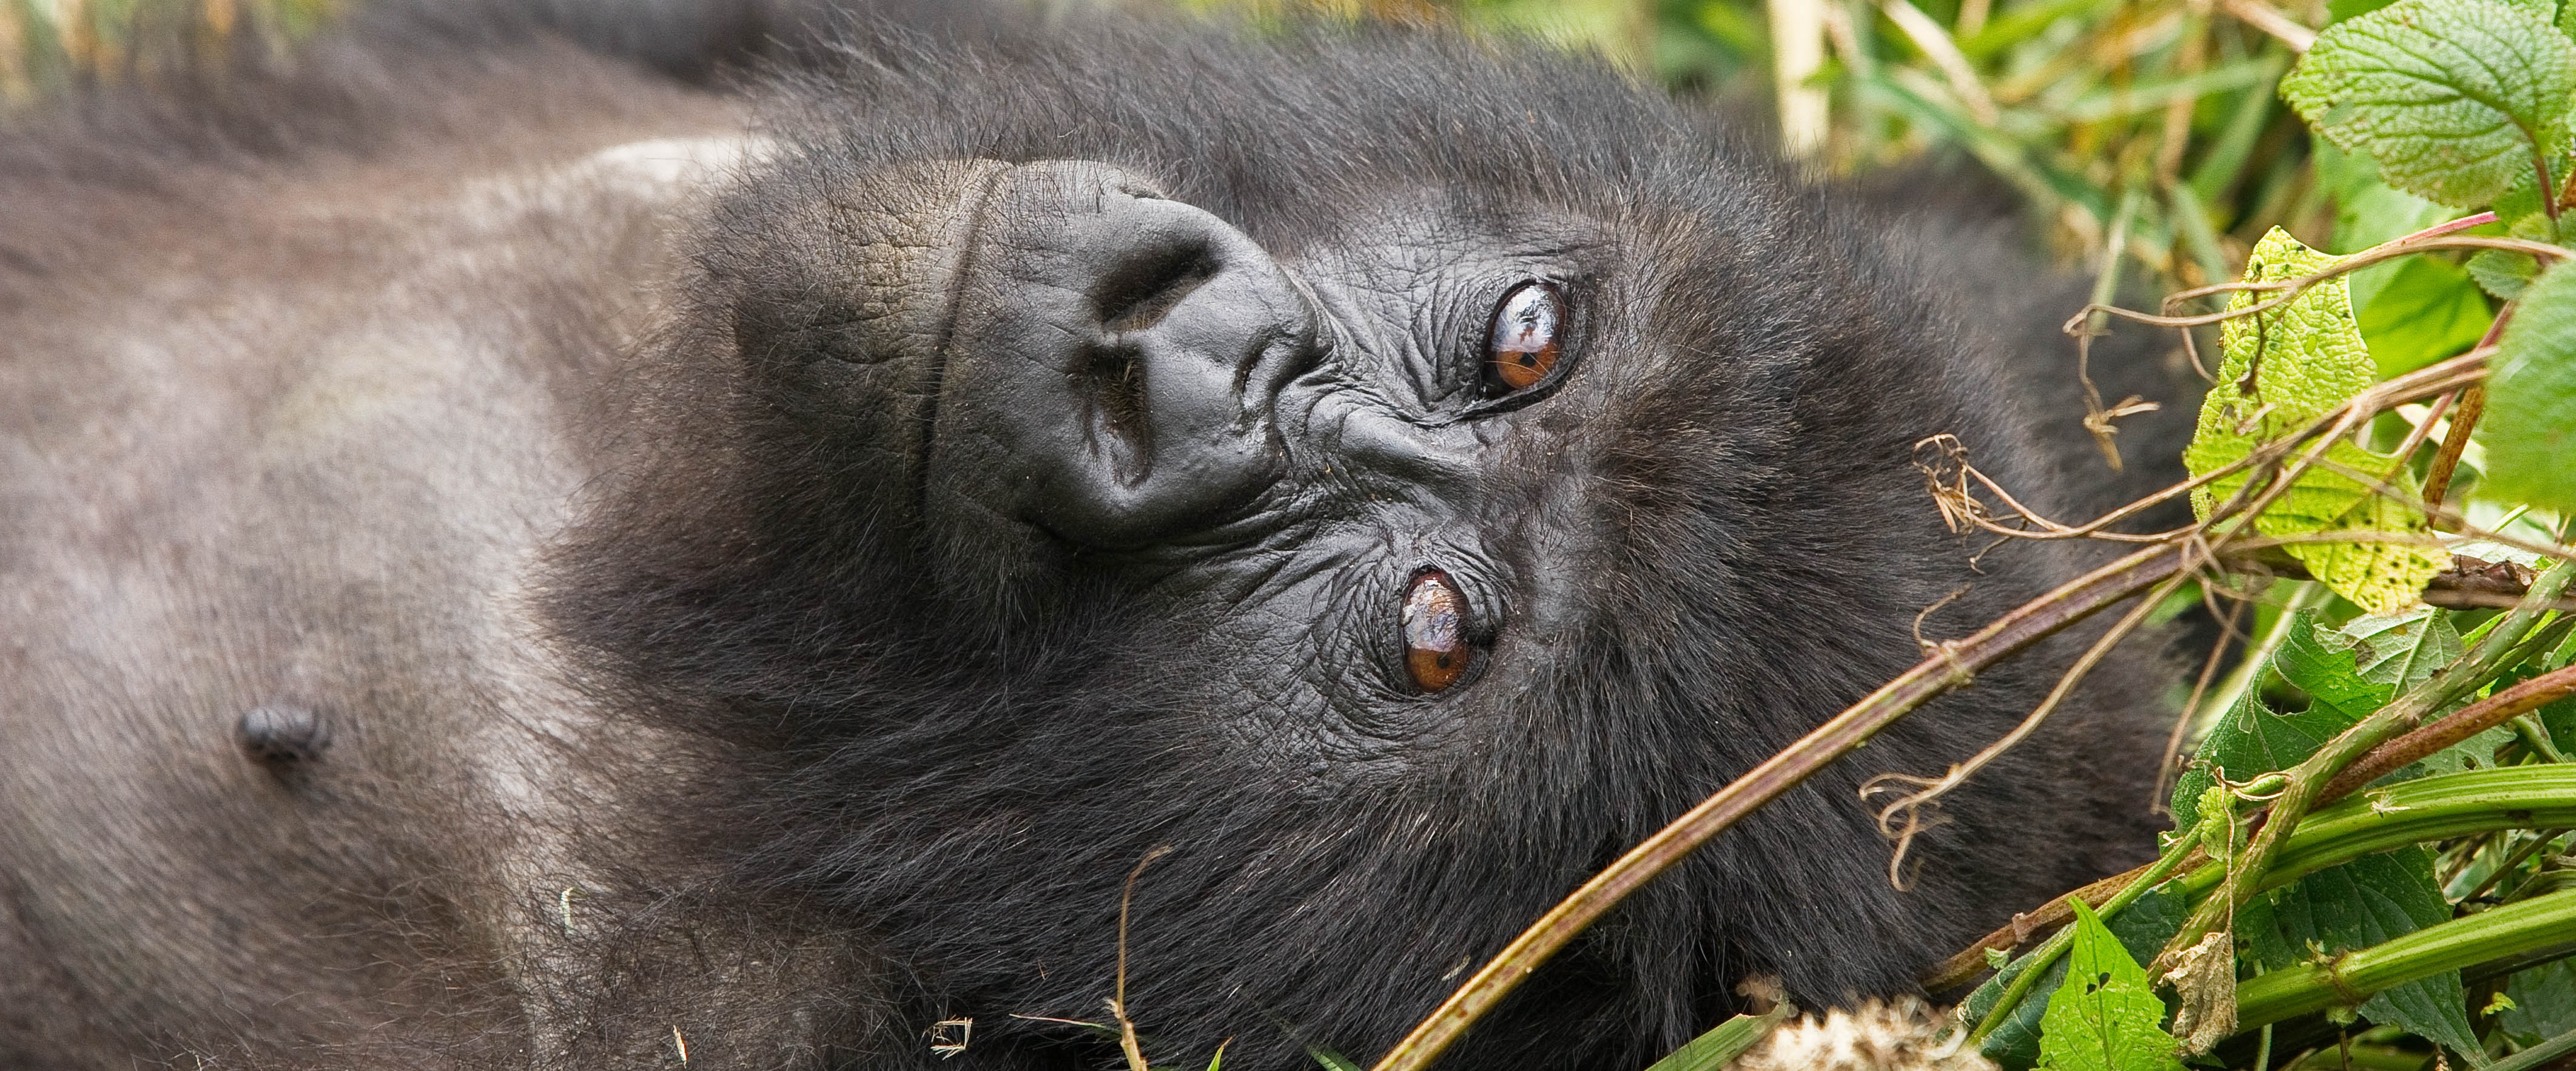 Female silverback gorilla. Volcanoes National Park